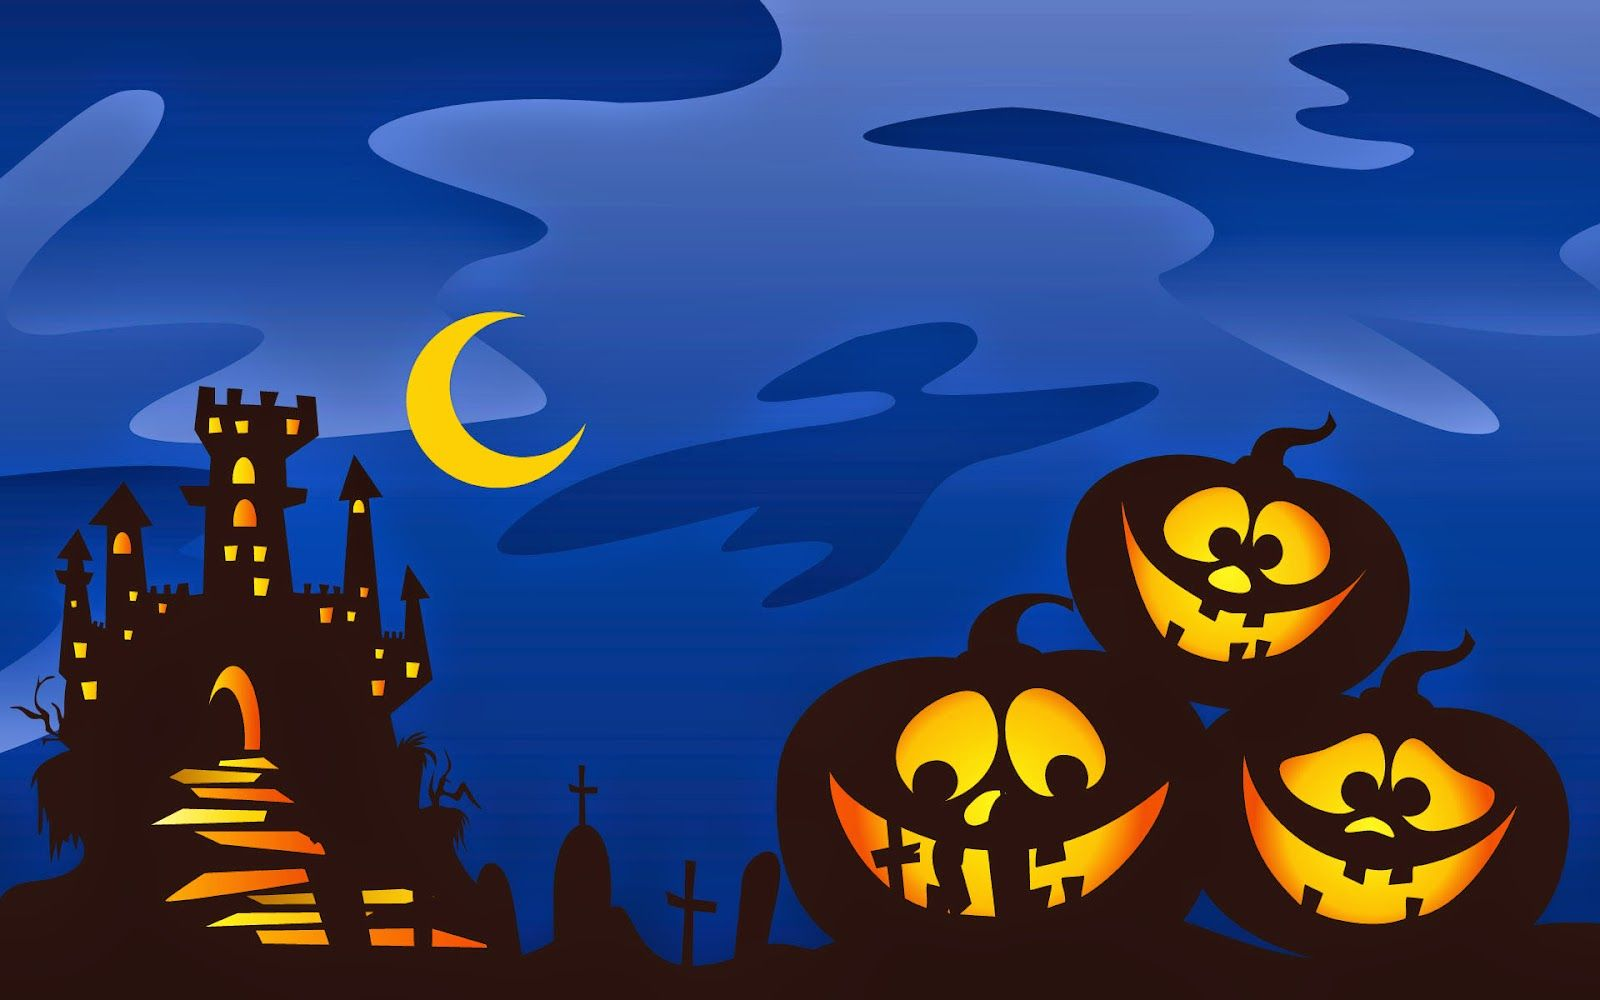 60 Amazing Halloween Hd Wallpapers 1920x1080 2560x1600 Px Set 2 Free Hd Wallpapers For Widescr Halloween Greetings Halloween Wallpaper Halloween Pictures